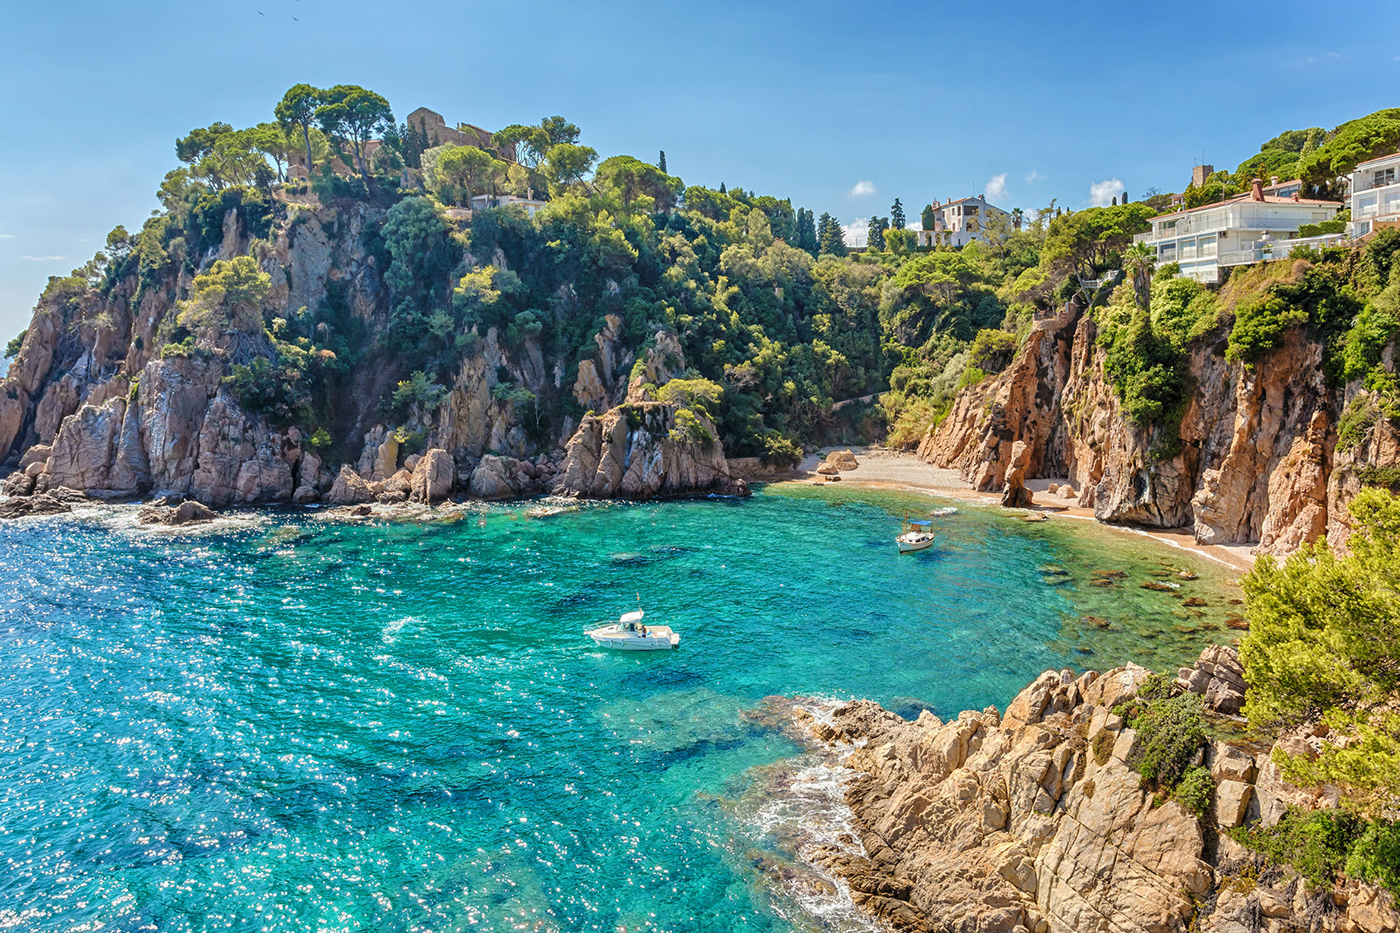 Visit the Costa Brava and take advantage of your stay at Camping El Pinar to explore Blanes